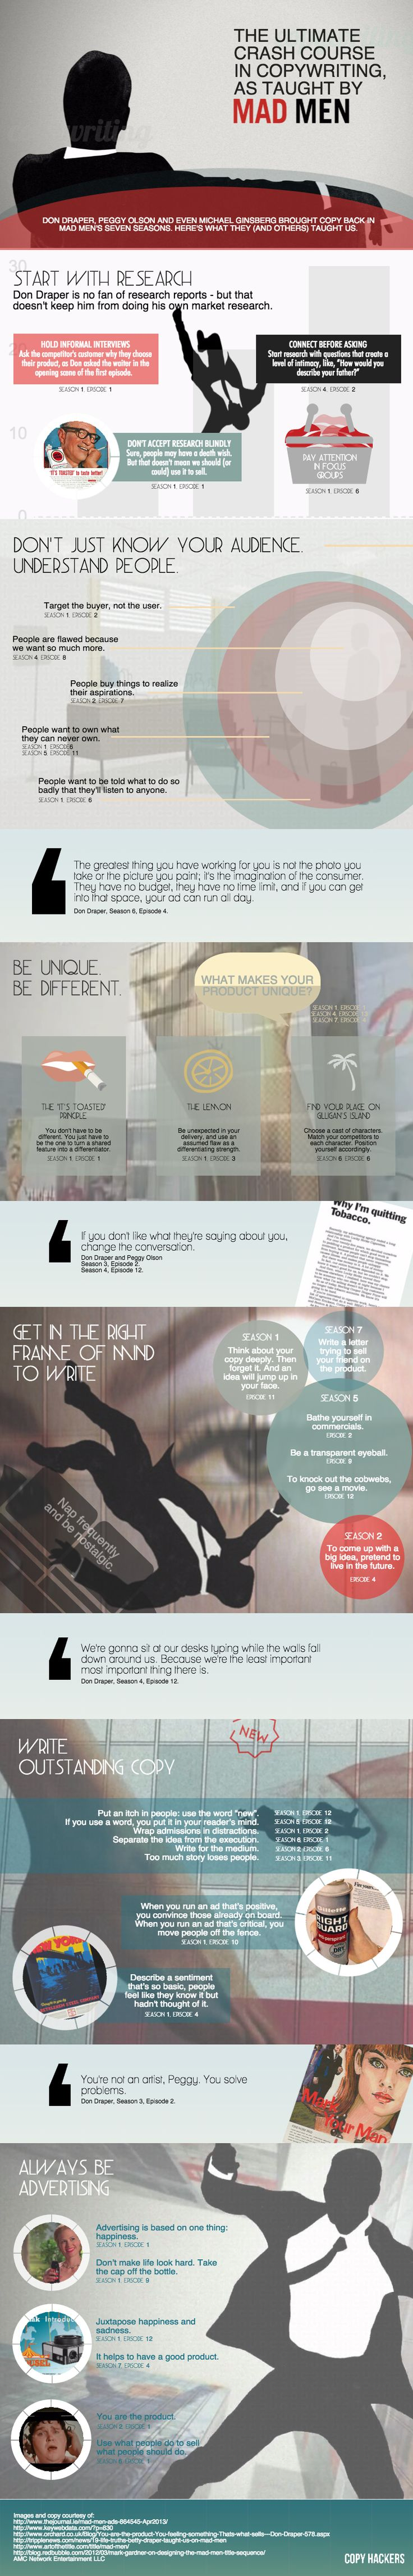 Crash Course in Copywriting From 'Mad Men' #infographic   @HubSpot